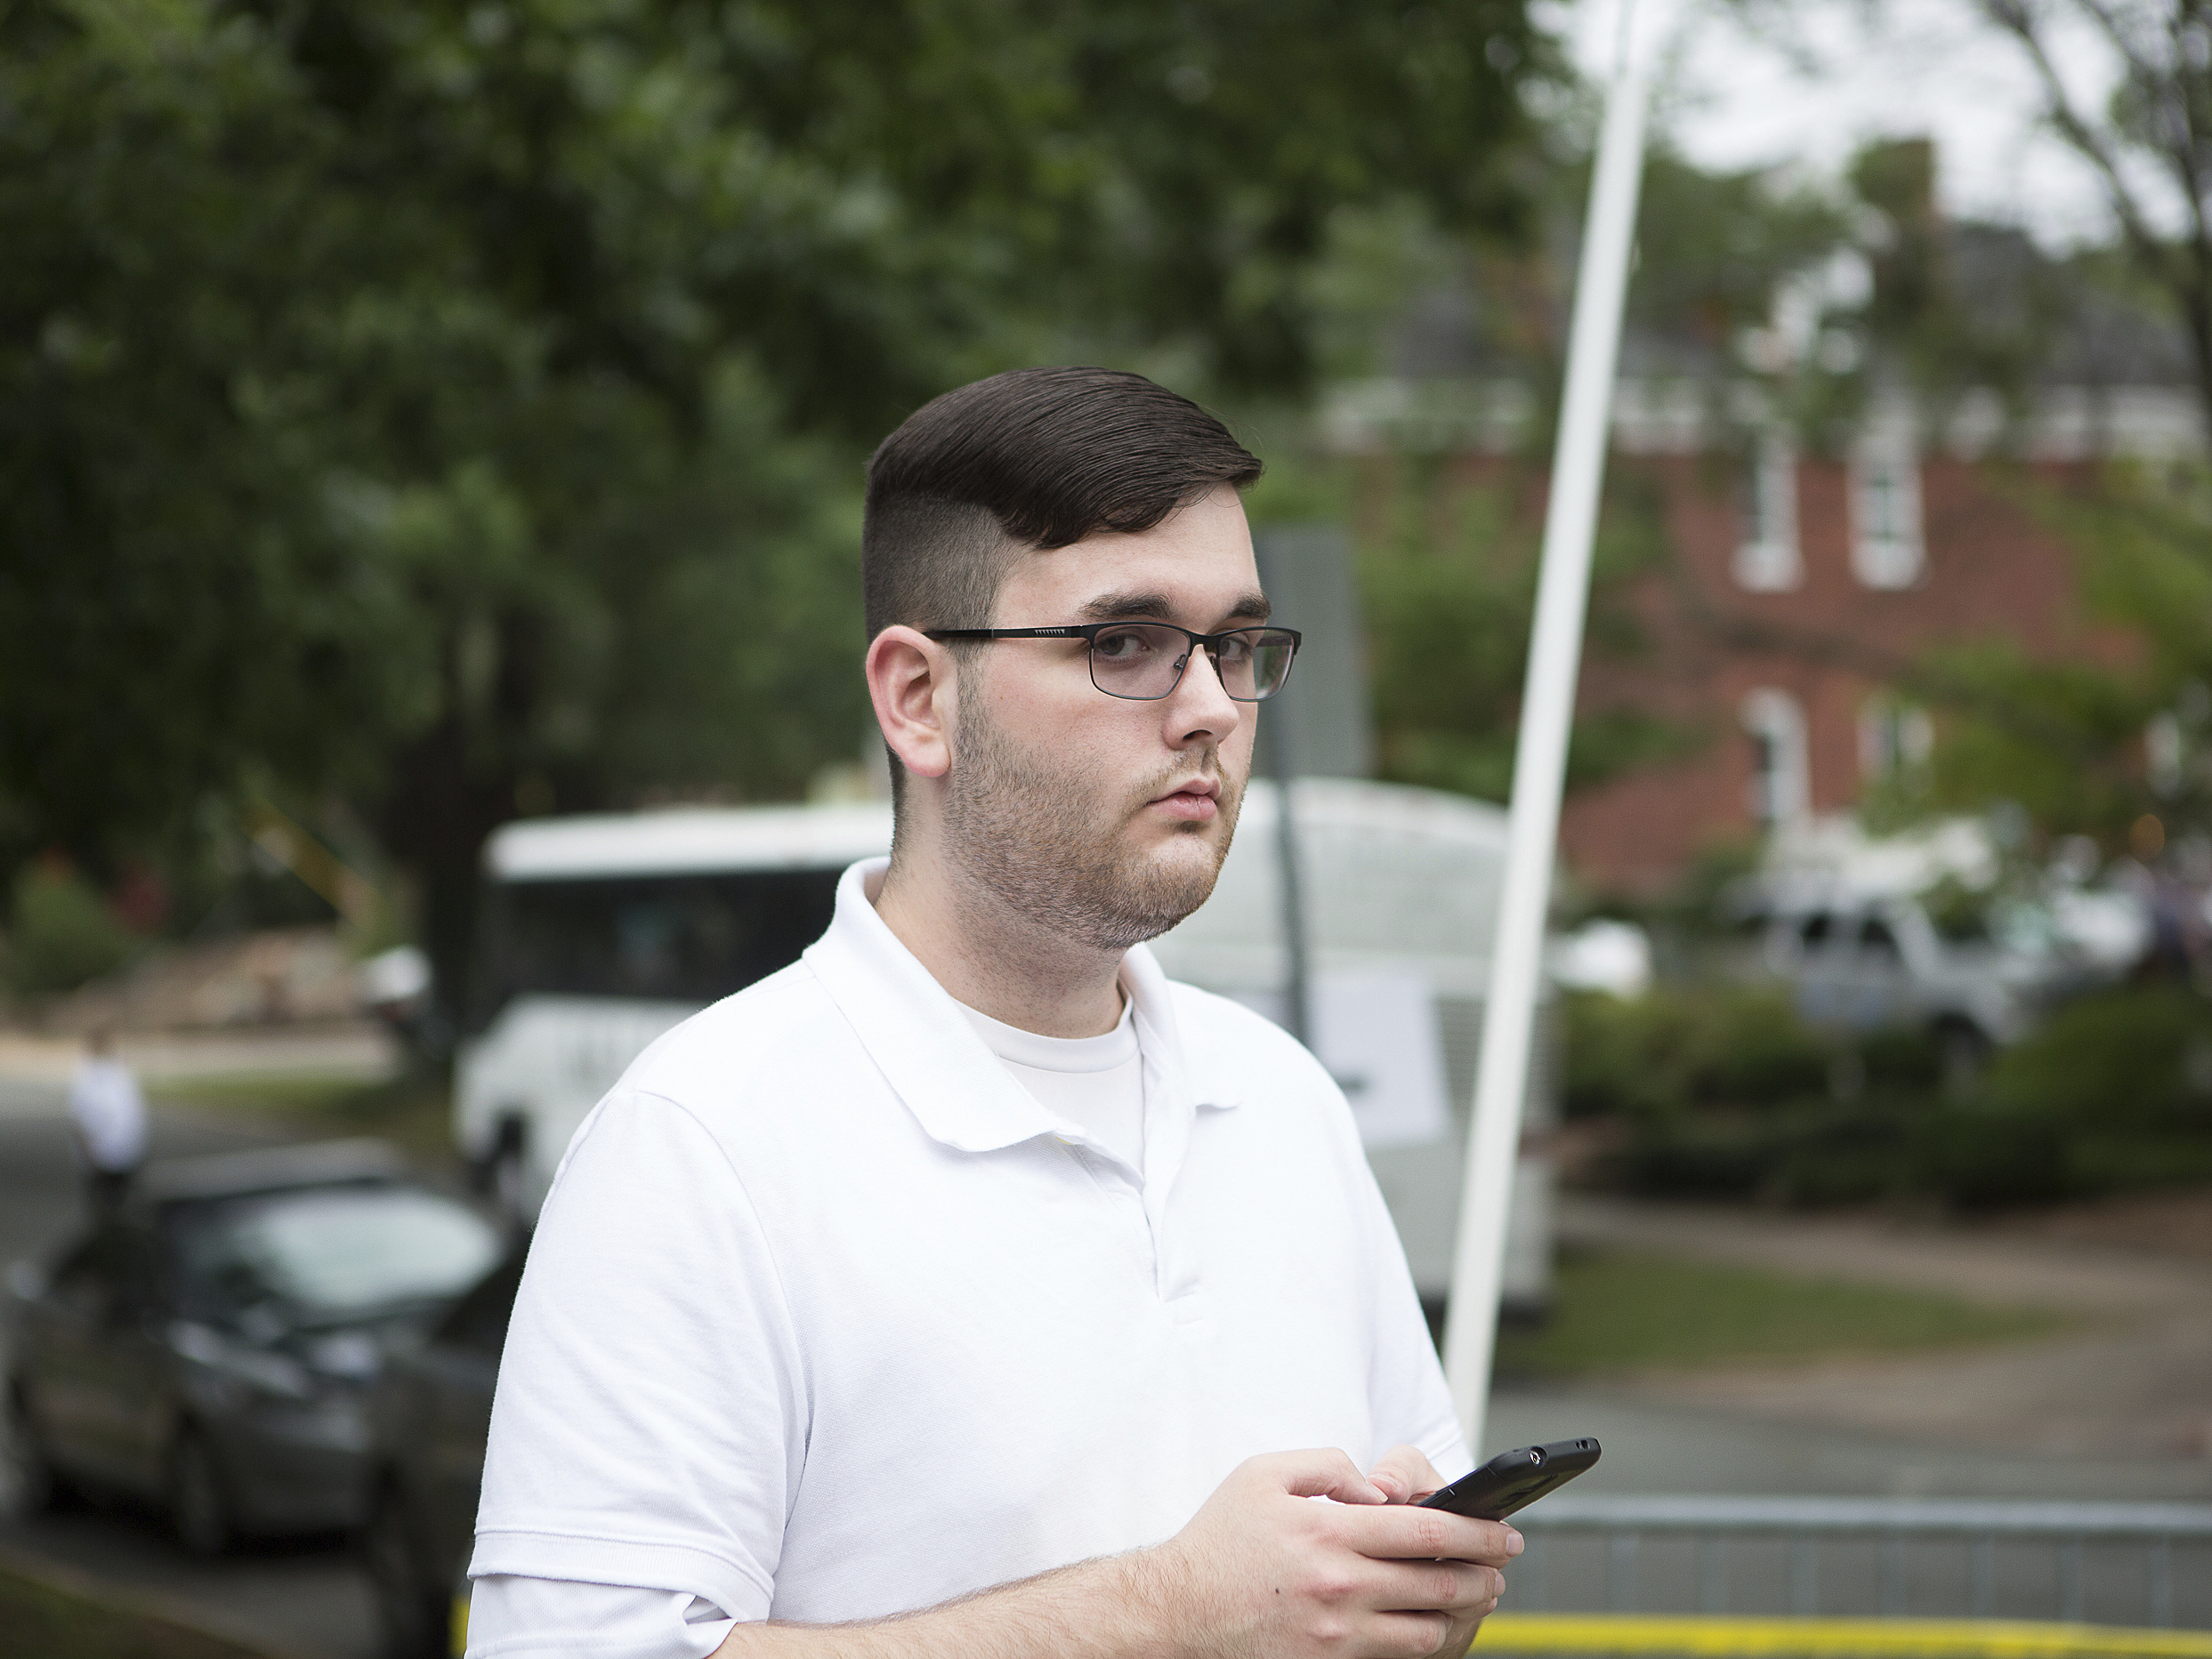 Man Who Ran Over Charlottesville Protester Sentenced To Life Plus 419 Years